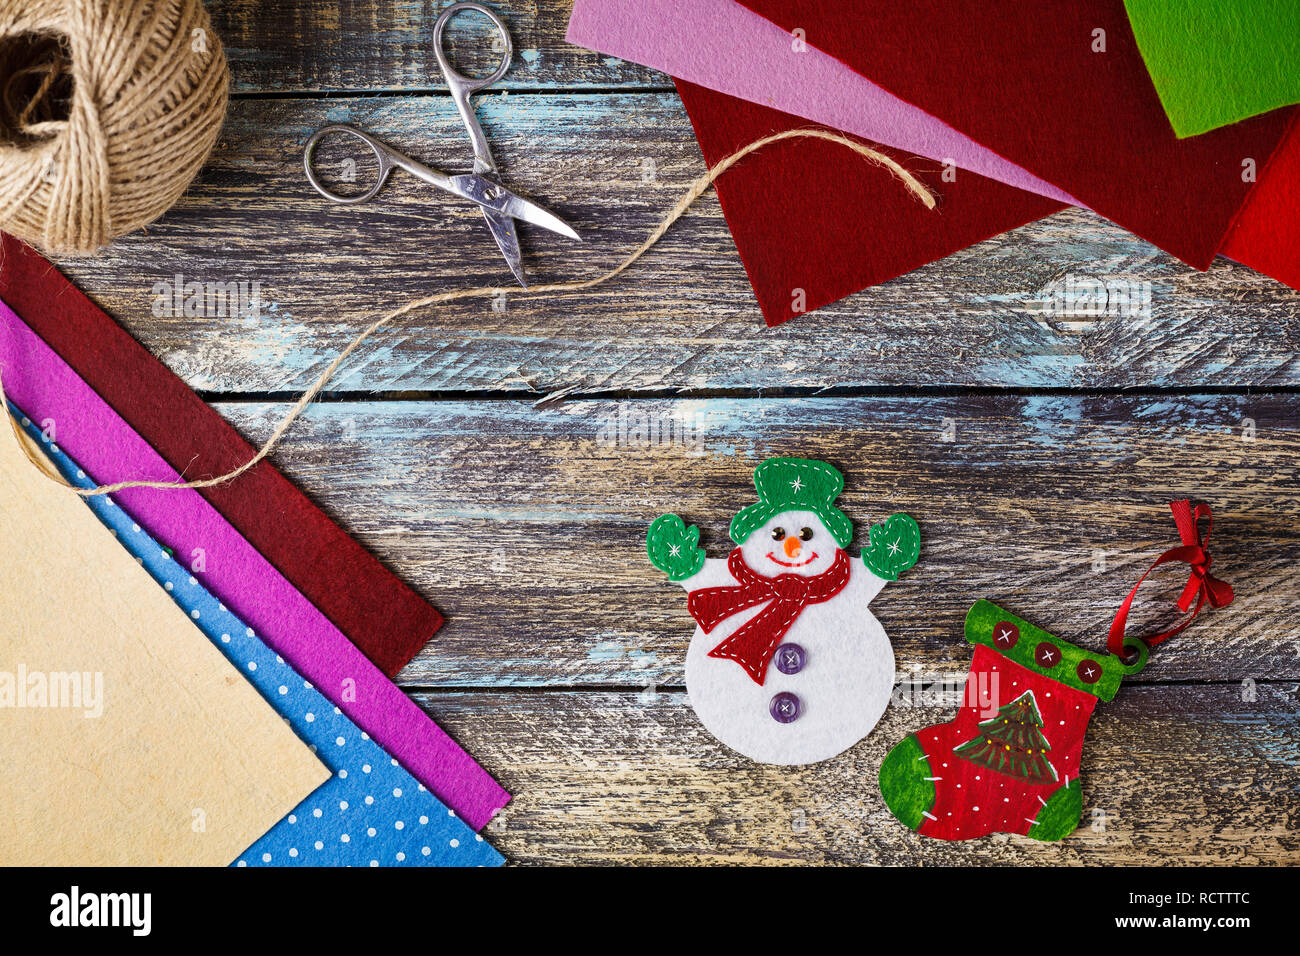 New Year snowman toy from felt at blue wooden background with felt pieces and scissors - Stock Image